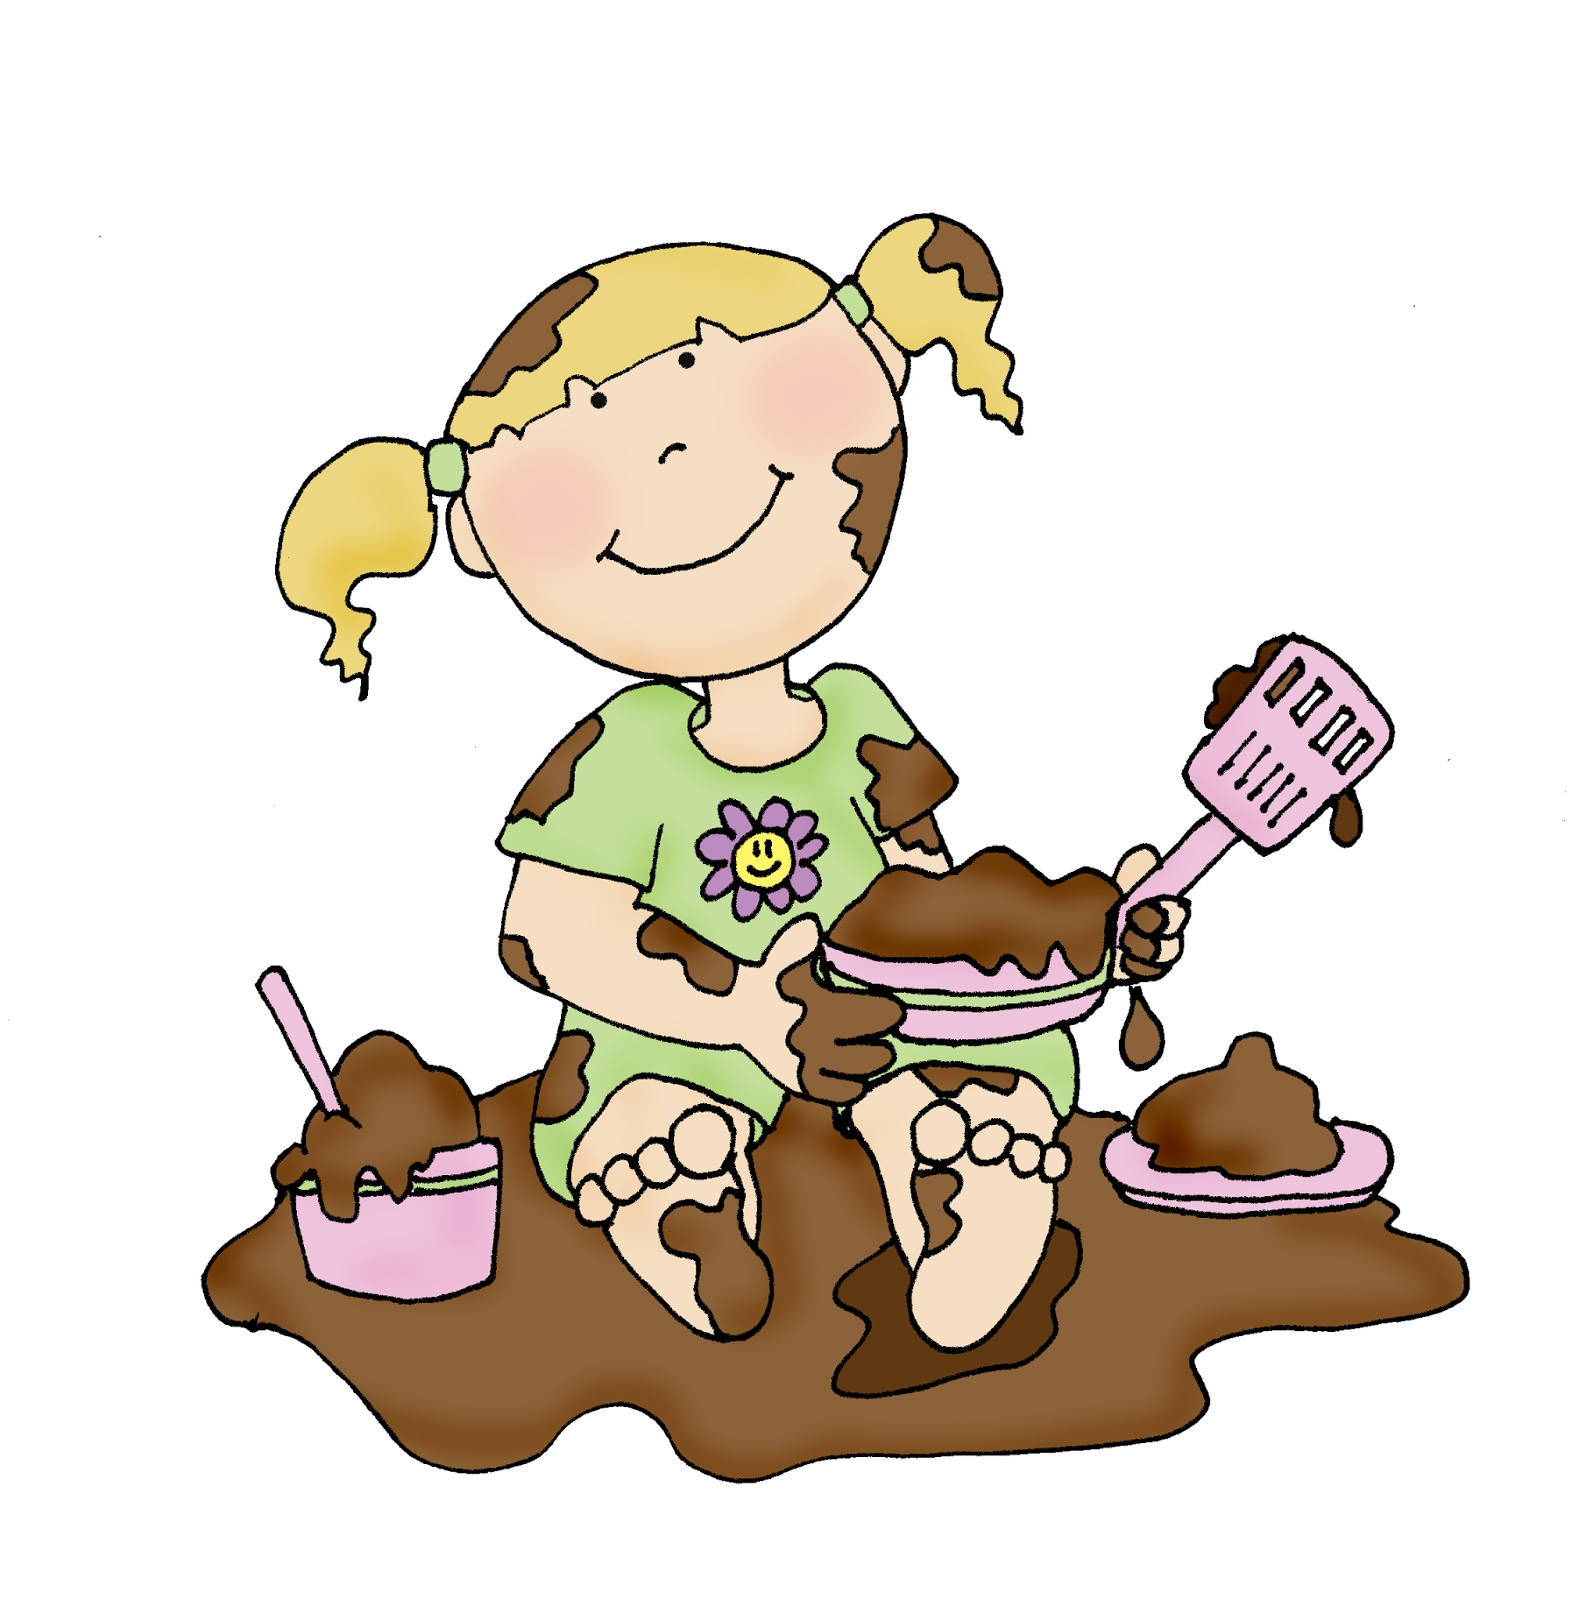 Mud clipart. New gallery digital collection